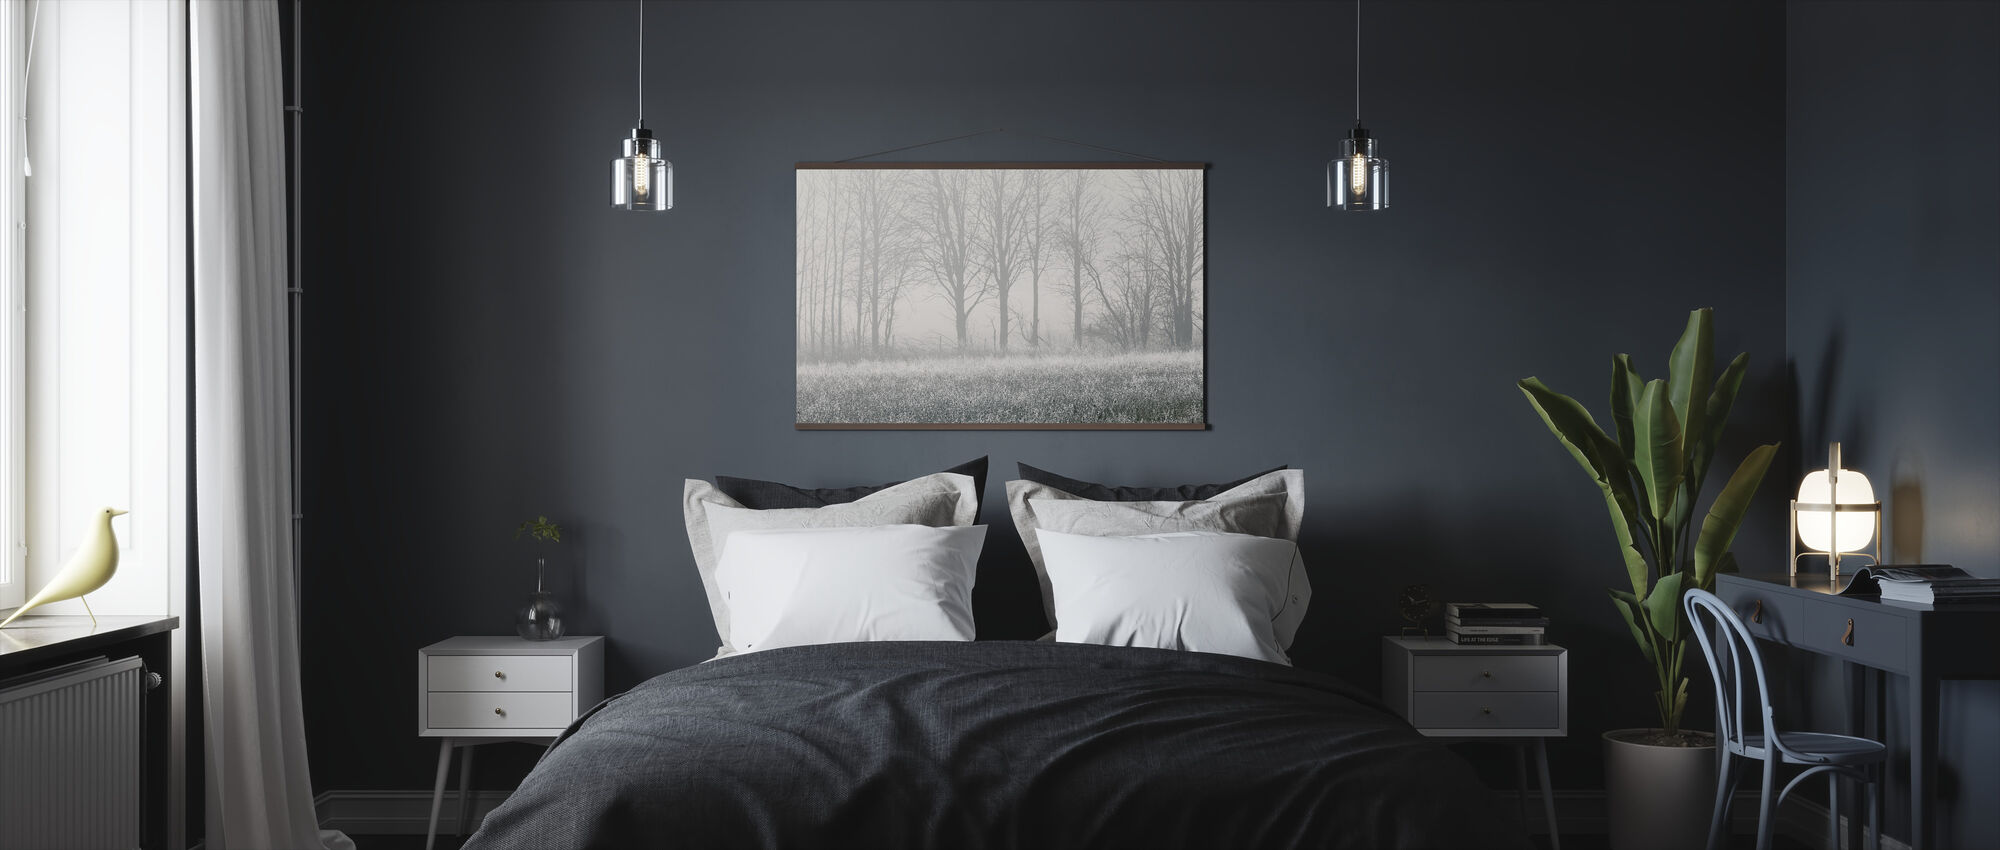 Misty Tree - Poster - Bedroom